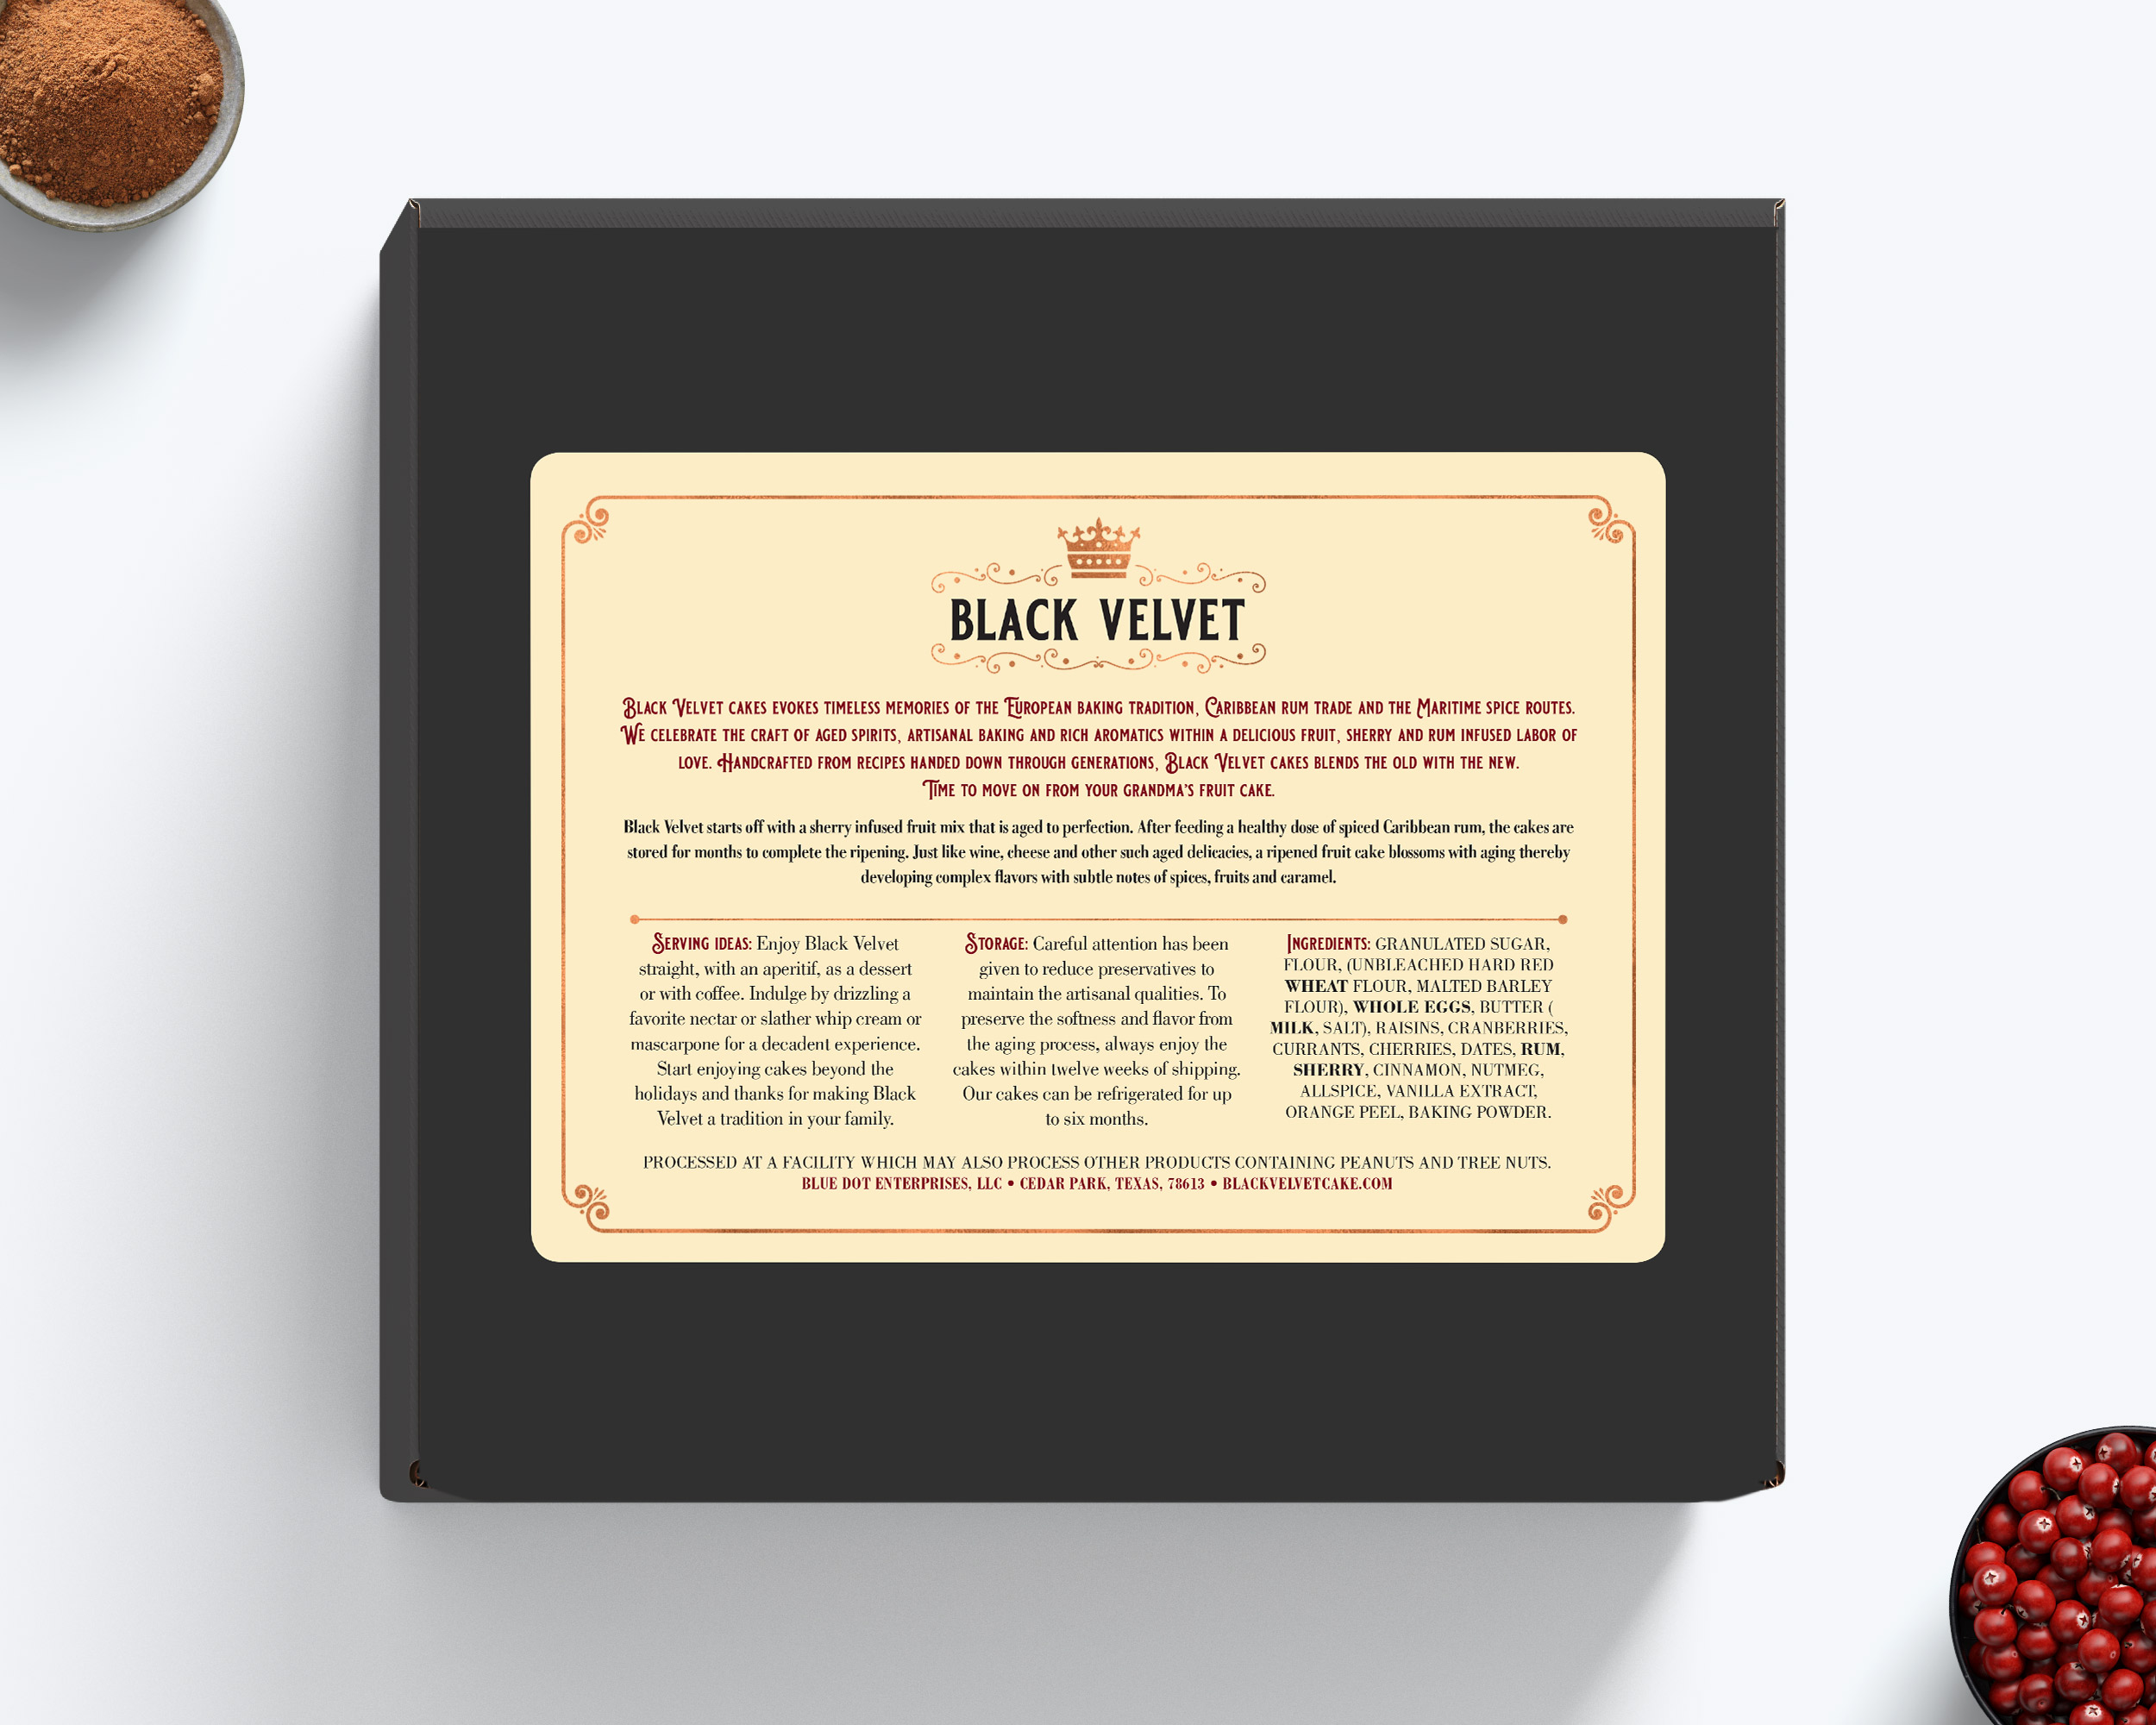 blackvelvetcake_back_label.jpg